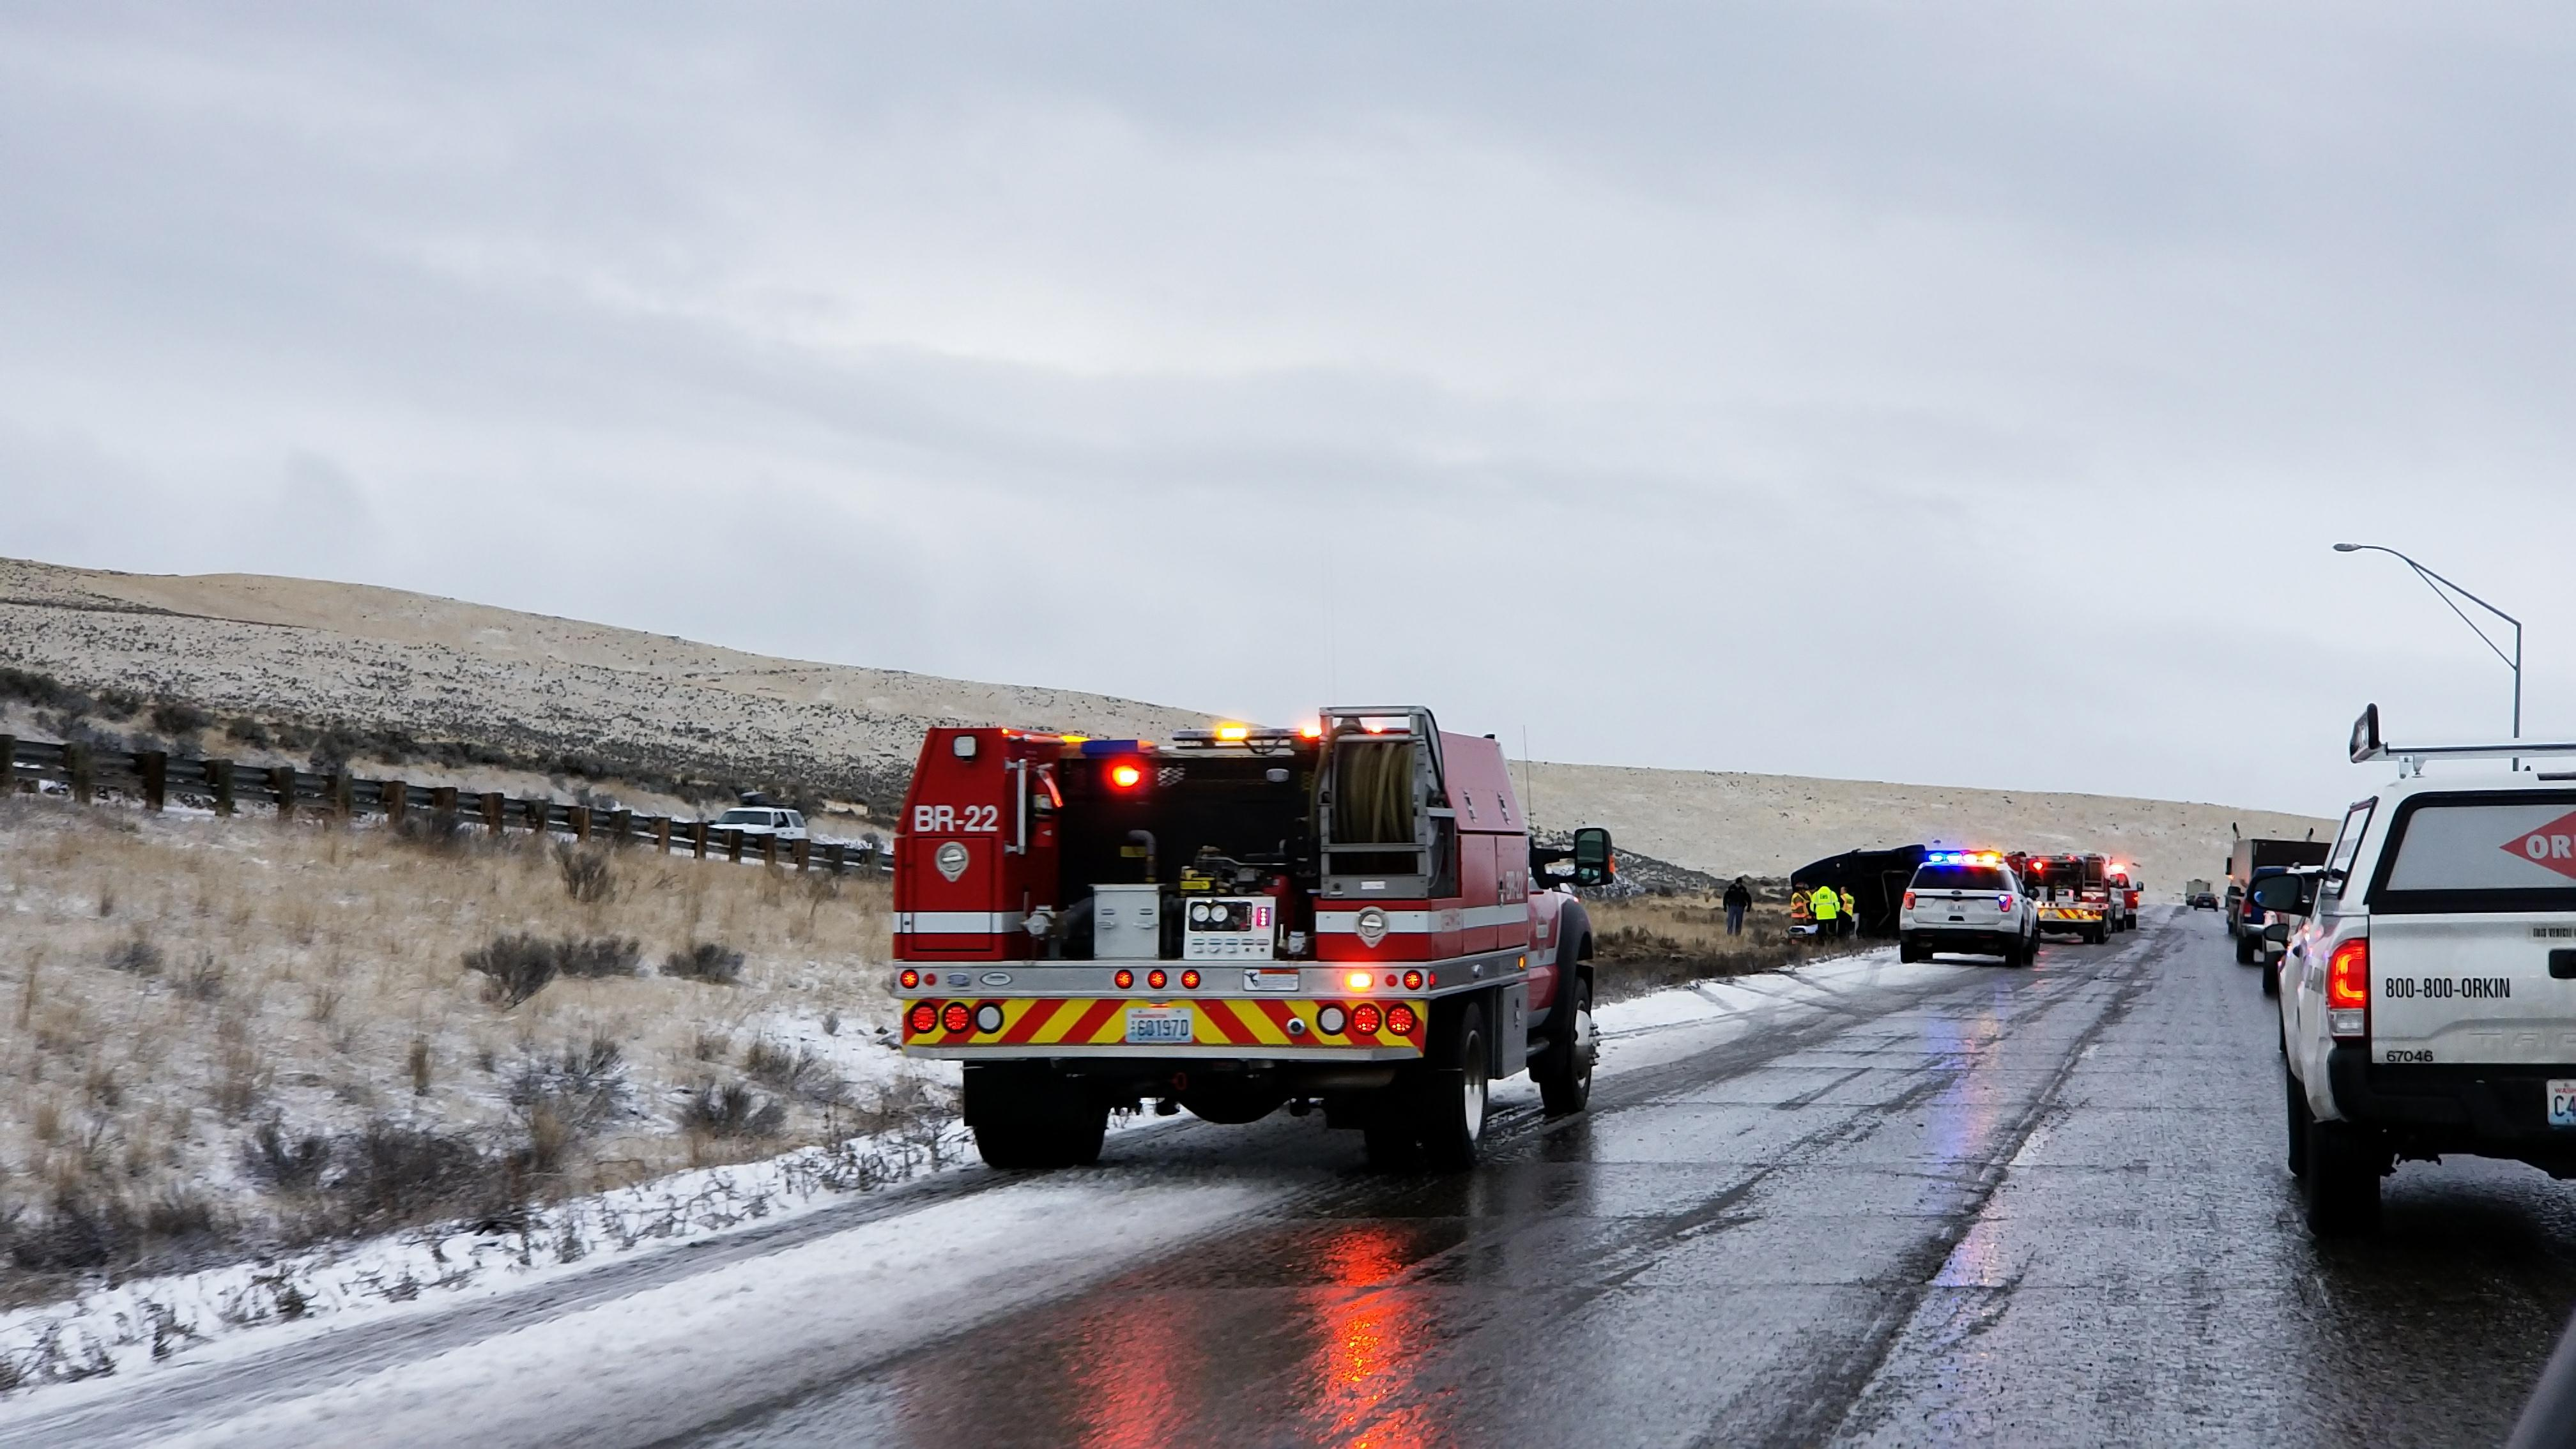 Bus driver hurt in rollover on I-82, Photo: William Longmire